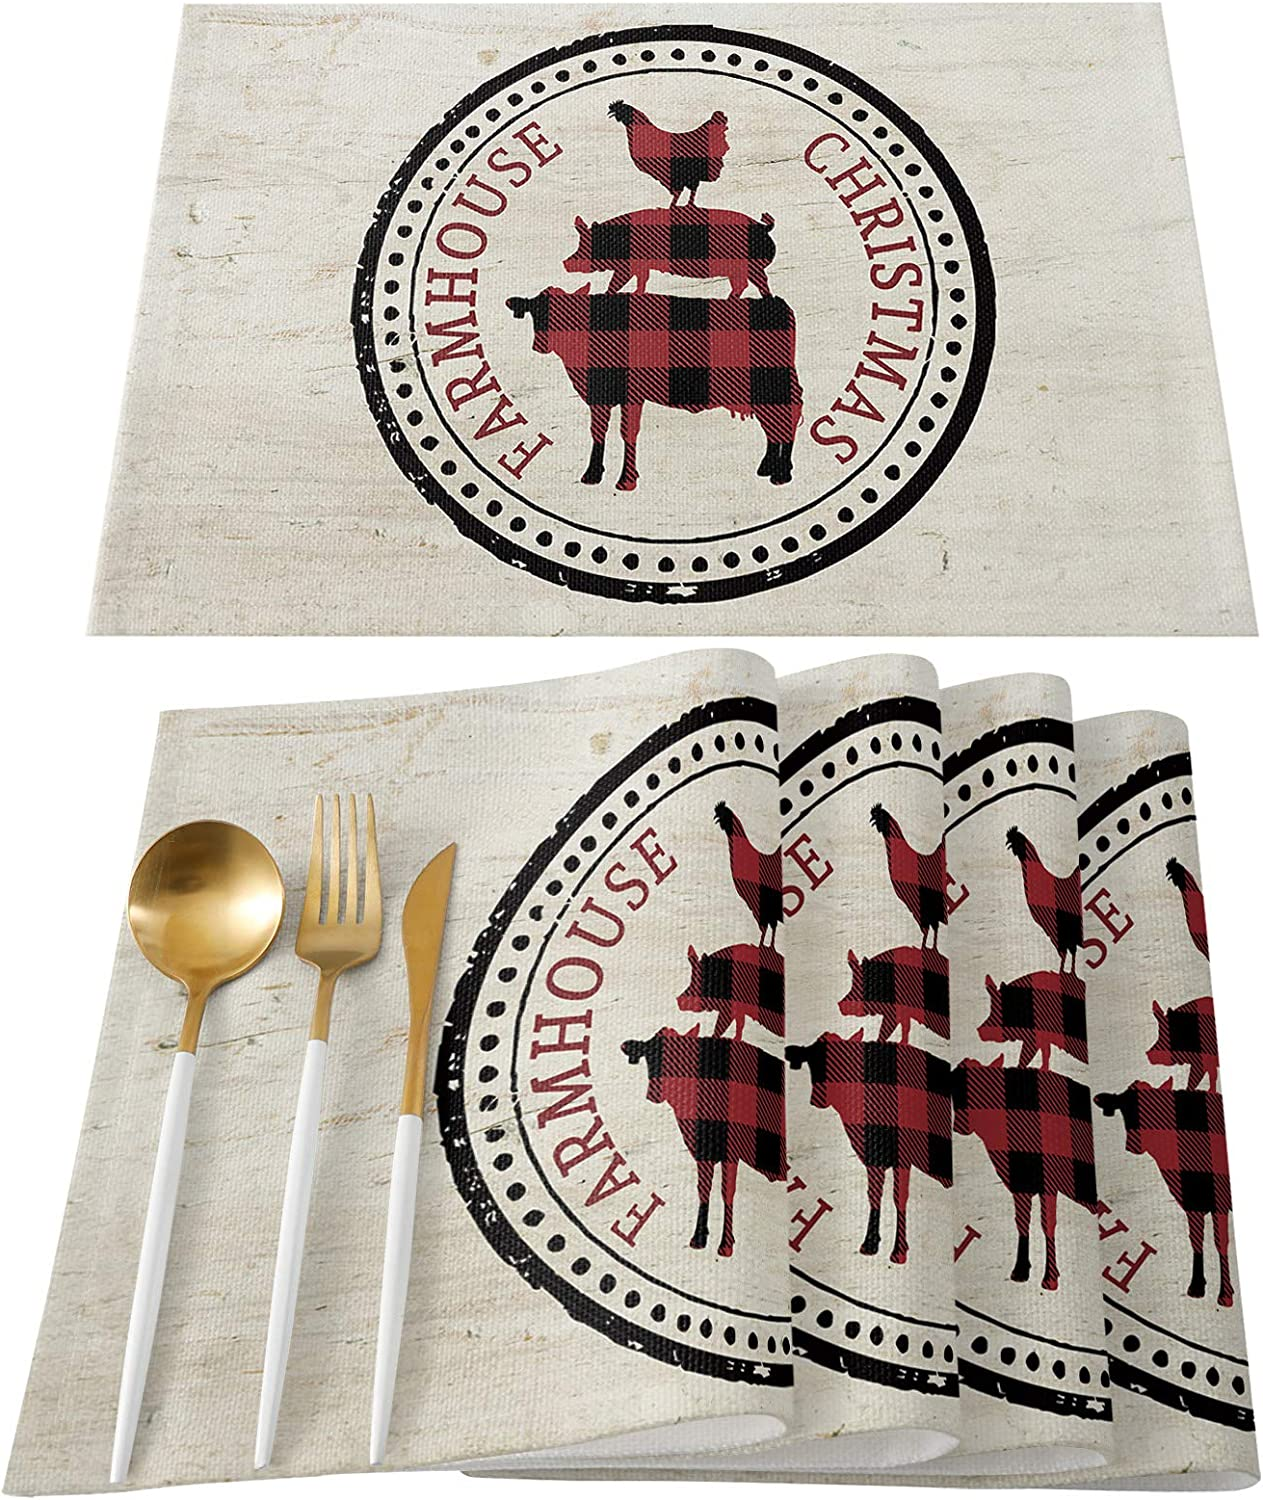 FAMILYDECOR National uniform free shipping Placemats for Kitchen Dining Table of 6 Set Place M Rare